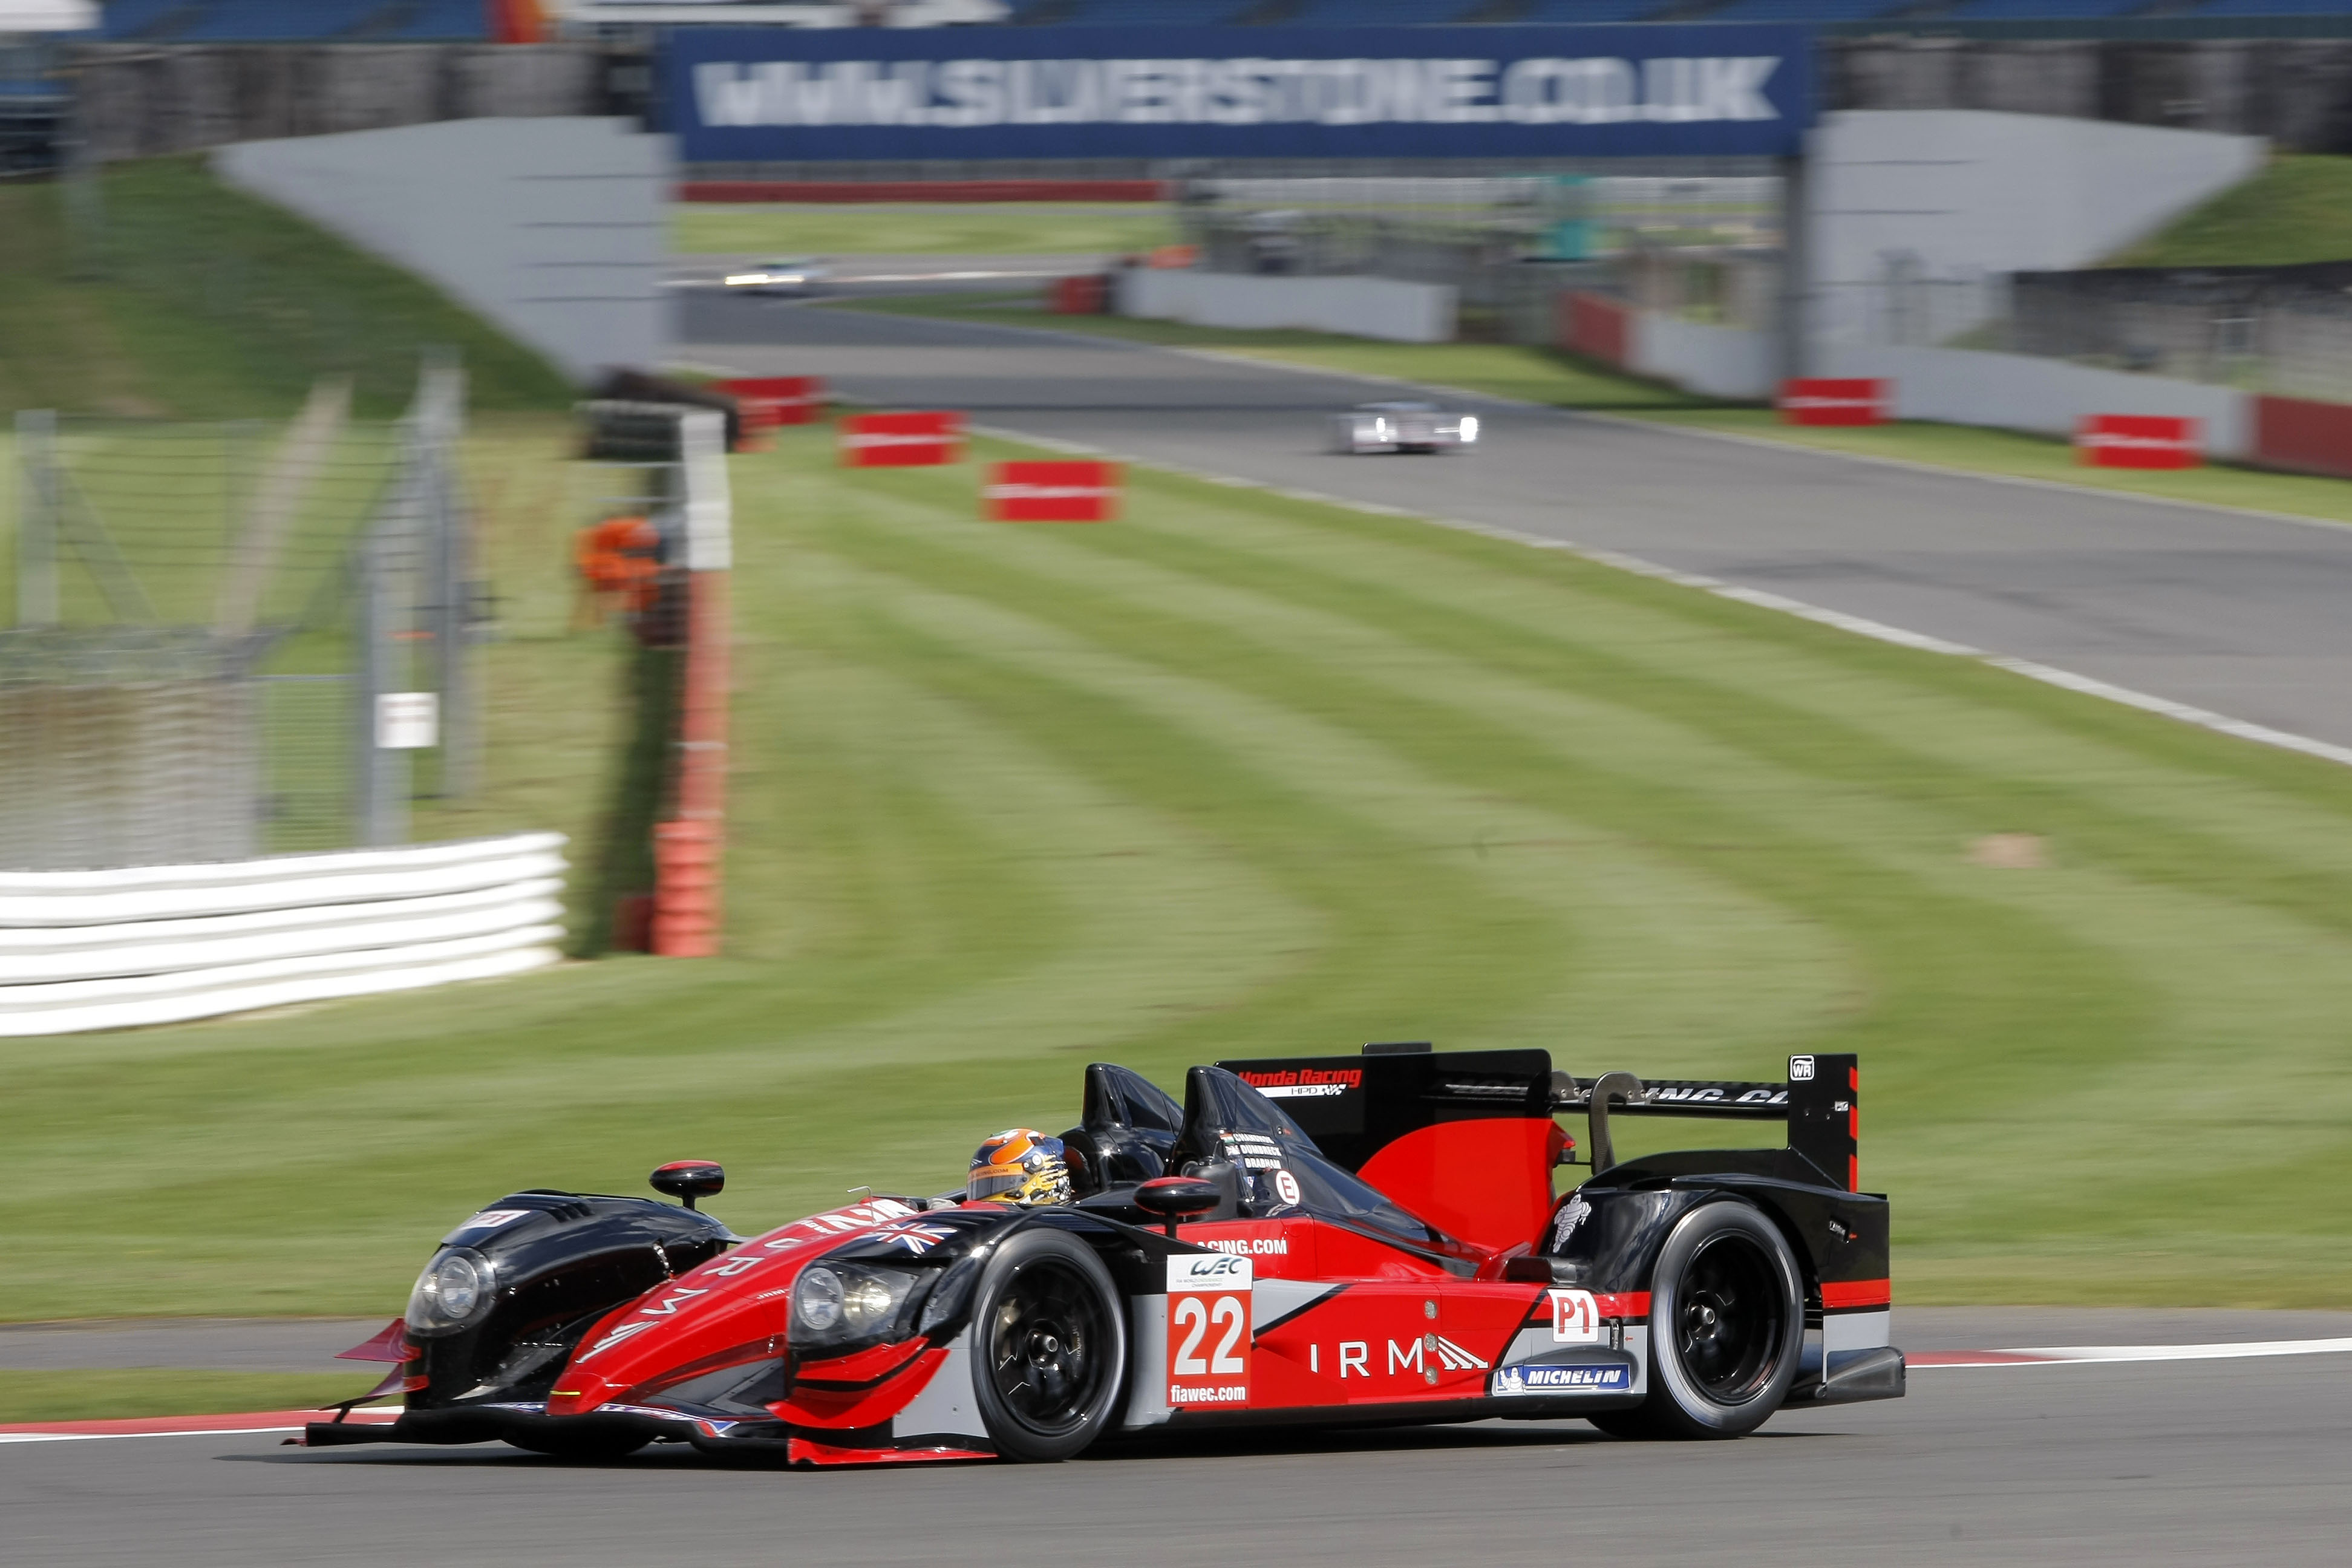 Karun Chandkok Qualifies in 7th Position for JRM Racing Ahead of 6 Hours of Silverstone